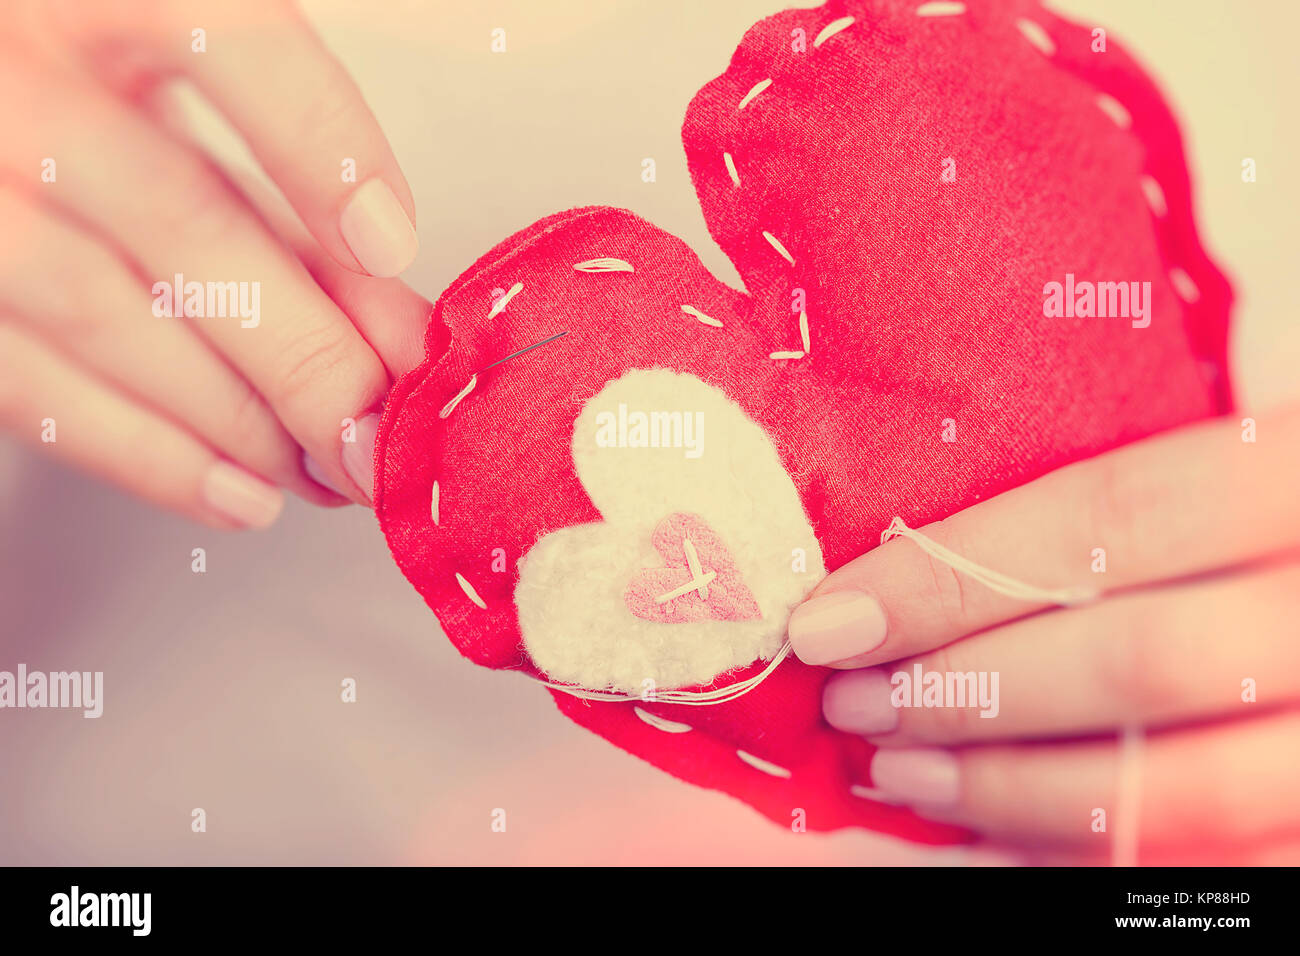 Sewn red heart toy - Stock Photo